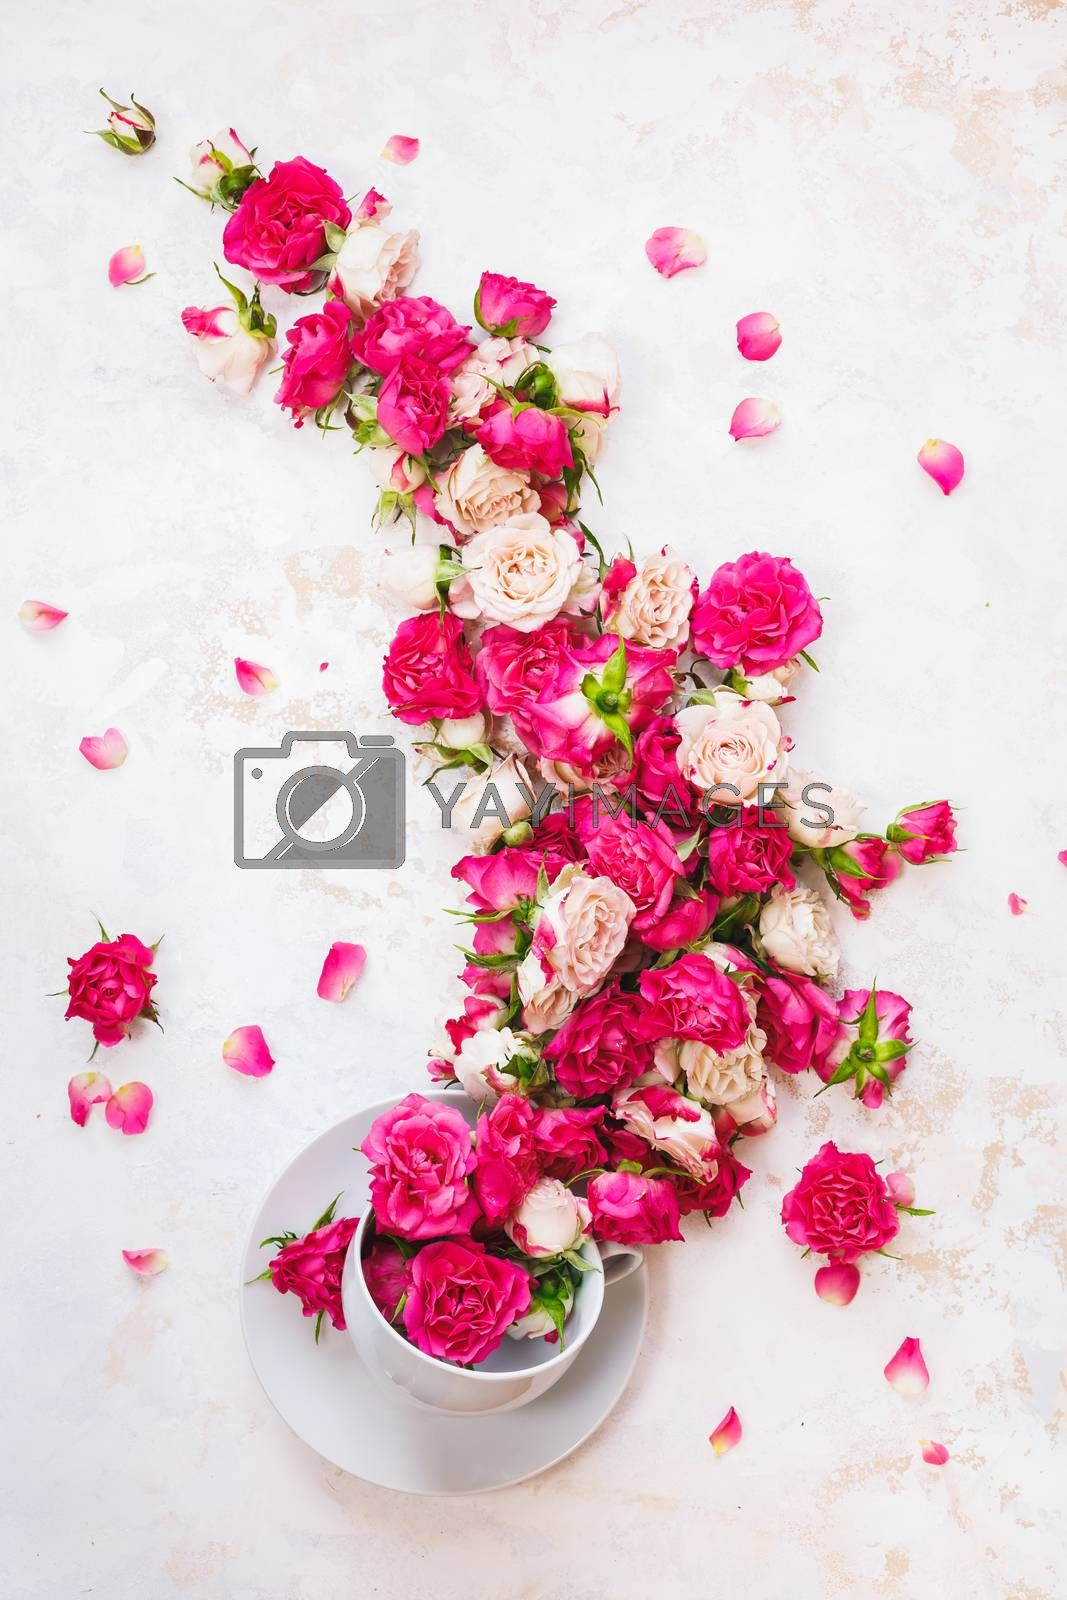 Flower tea. Stream of rose flowers flowing in a tea cup on white rustic  background. Top view, blank space